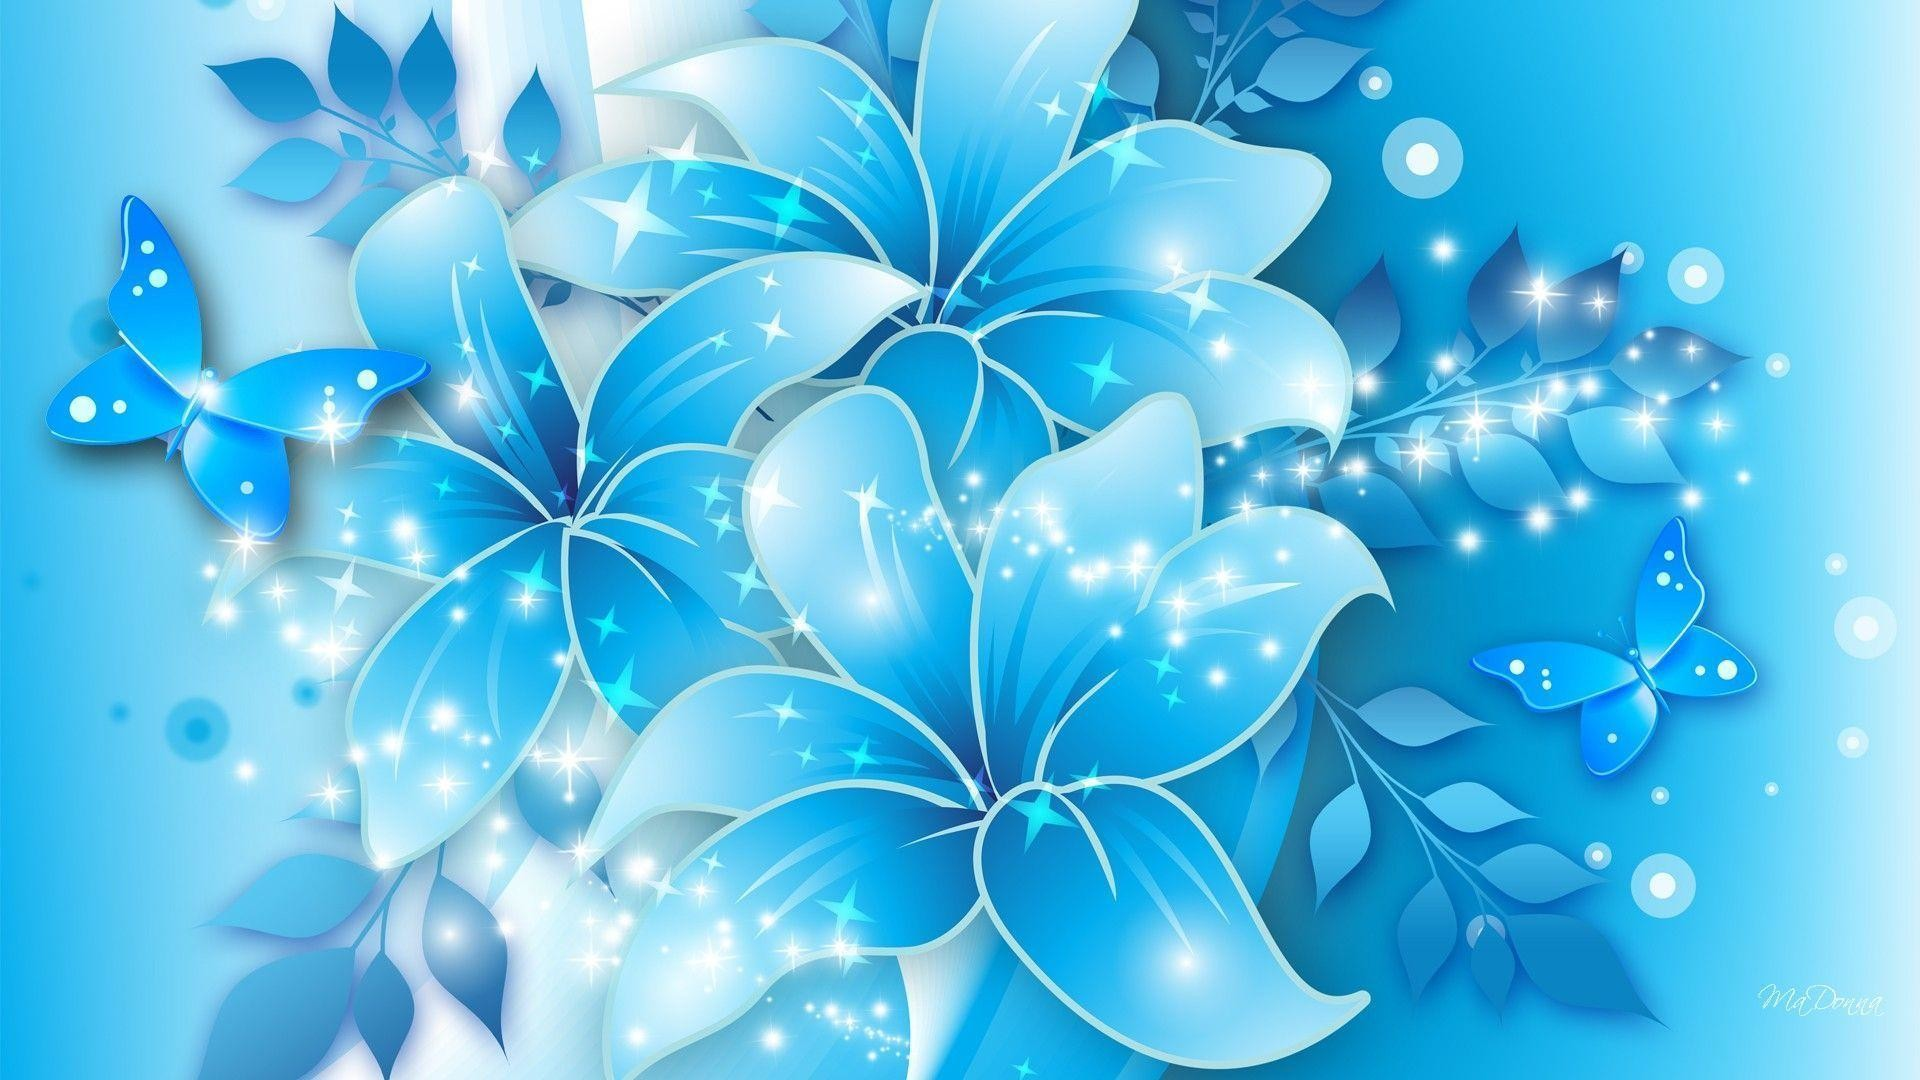 1920x1080 Wallpapers For > Light Blue Flower Background Design